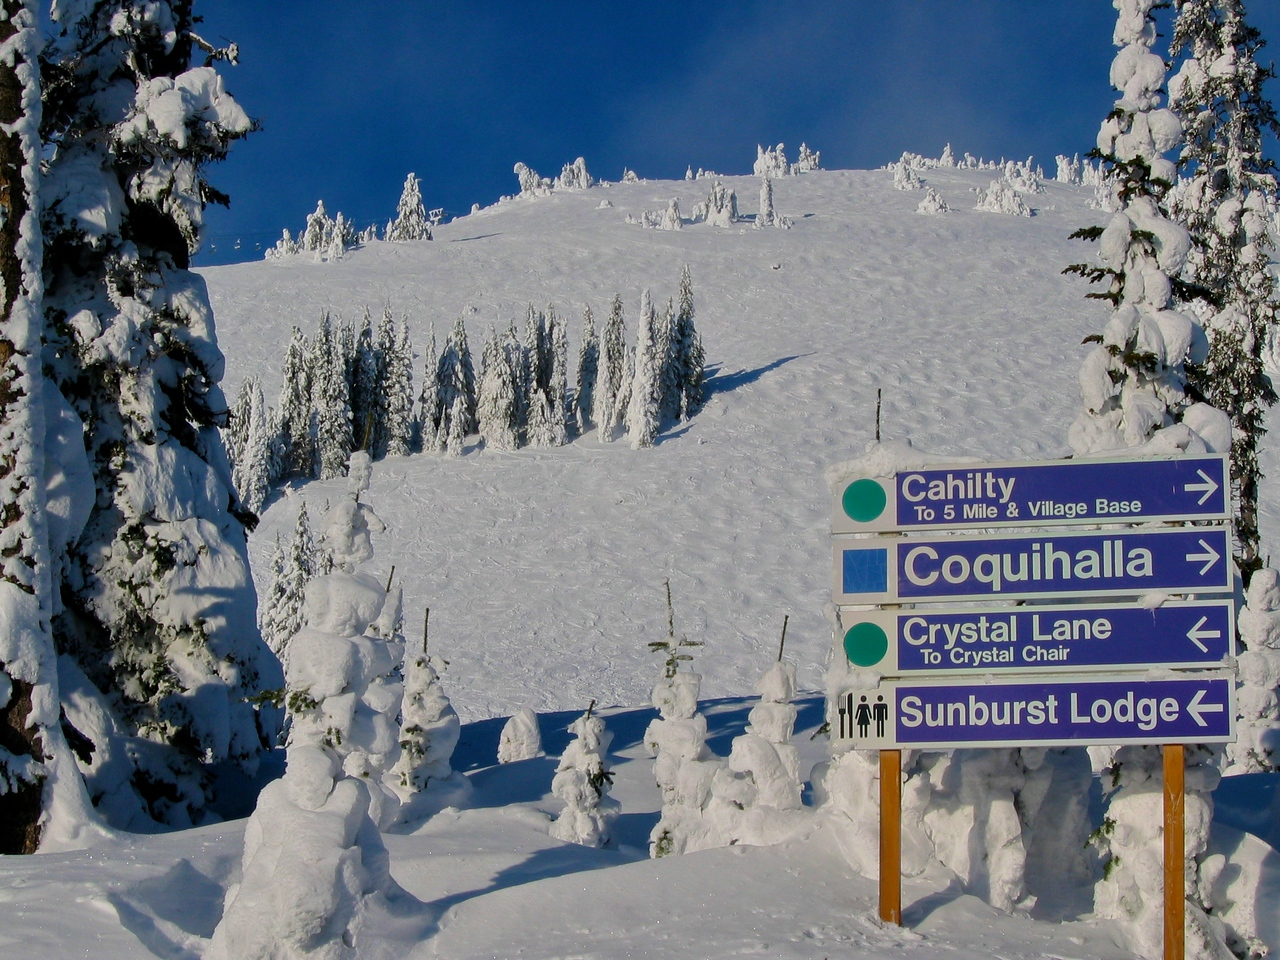 The longest run at Sun Peaks is 5 miles long.  You'll spend more time on the snow than on the lift.